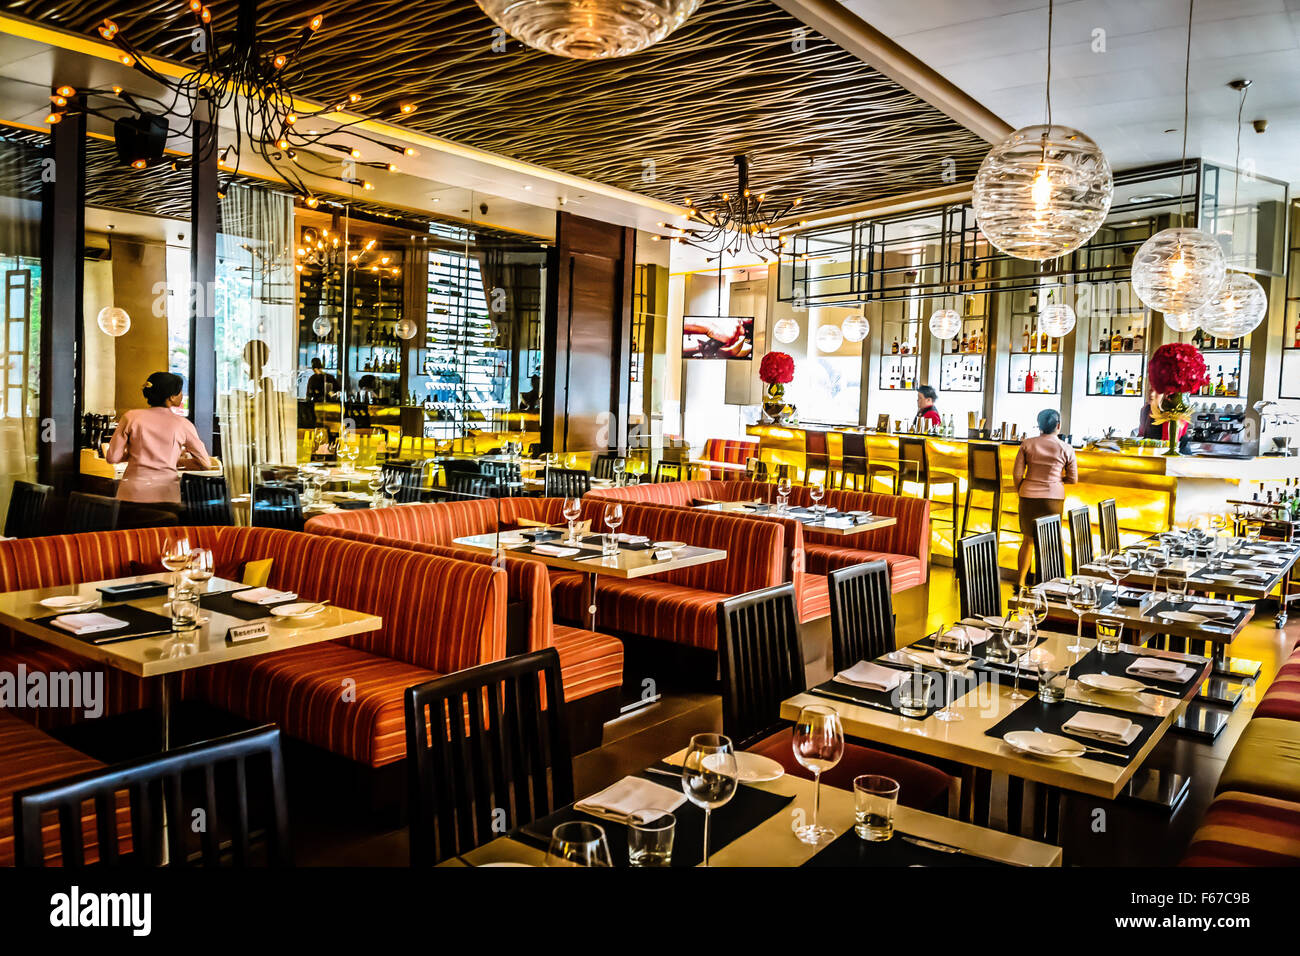 Beautiful italian restaurant interior in jakarta